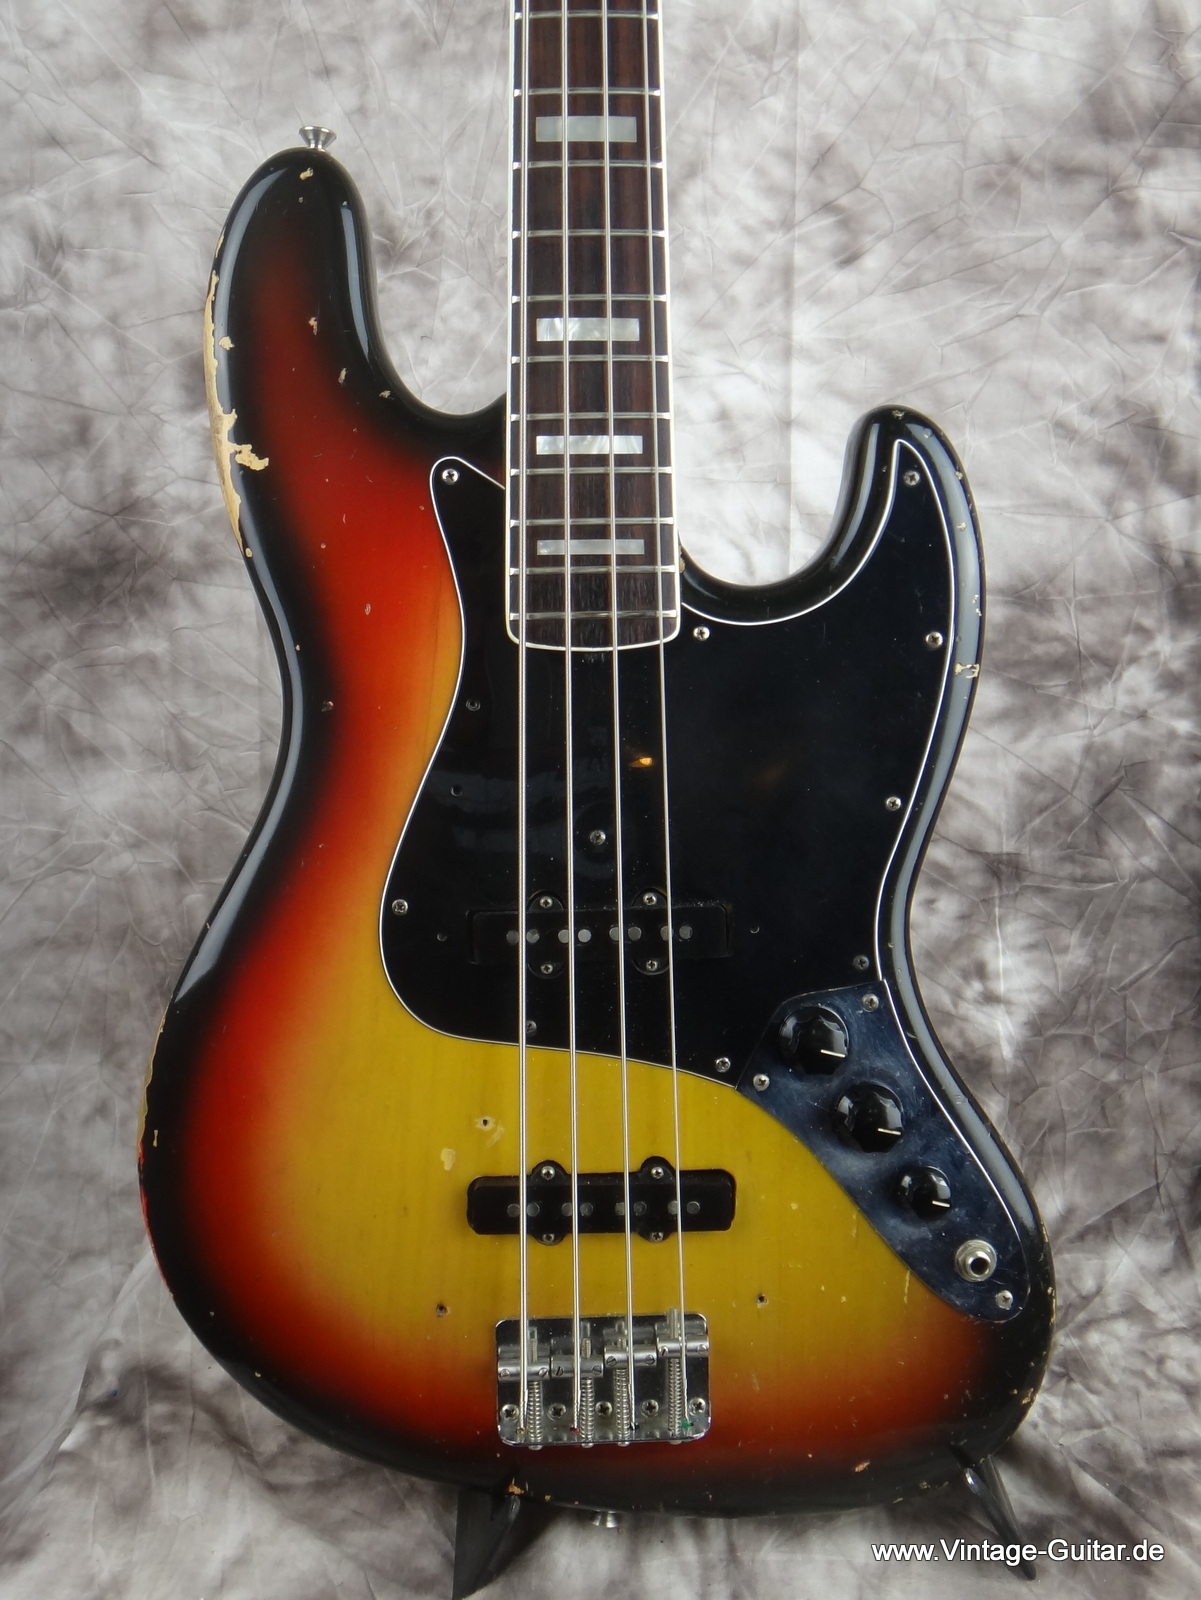 img/vintage/1786/Fender_Jazz-Bass_1974_sunburst-alder-body-002.JPG